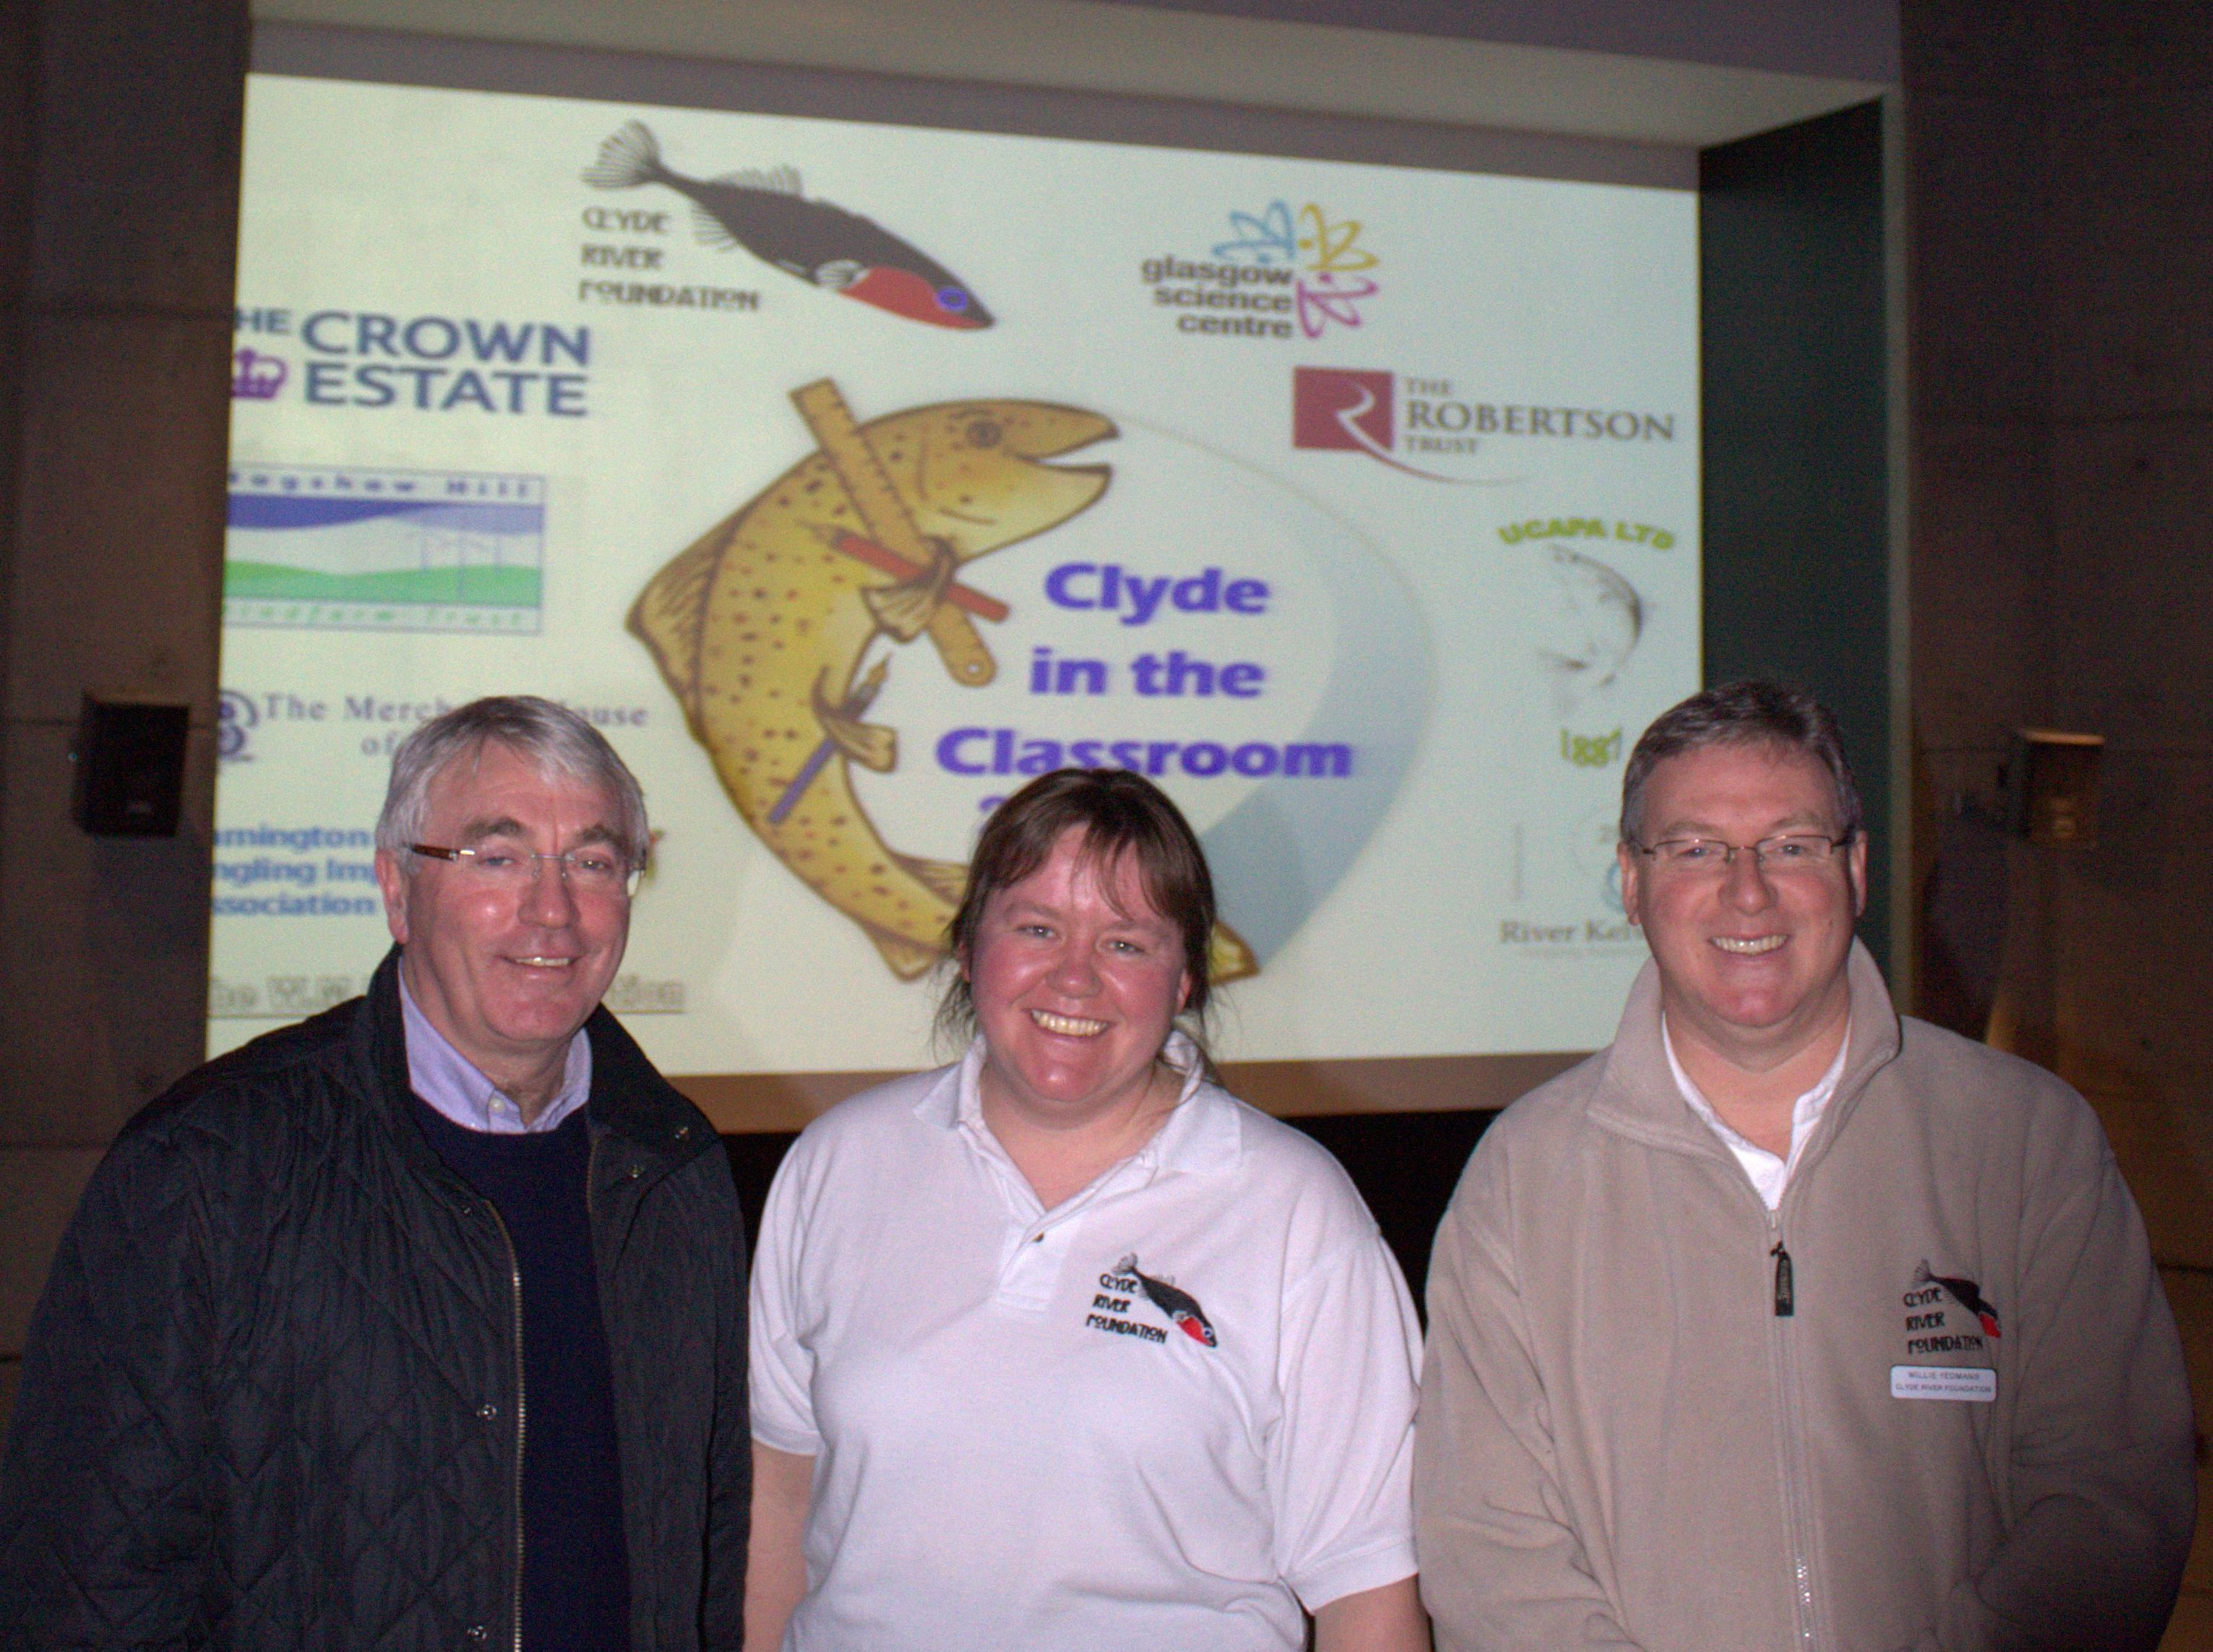 New Chairman, Robert Kerr (left) with Caroline McGillivray and Willie Yeomans at Glasgow Science Centre for the launch of Clyde in the Classroom.